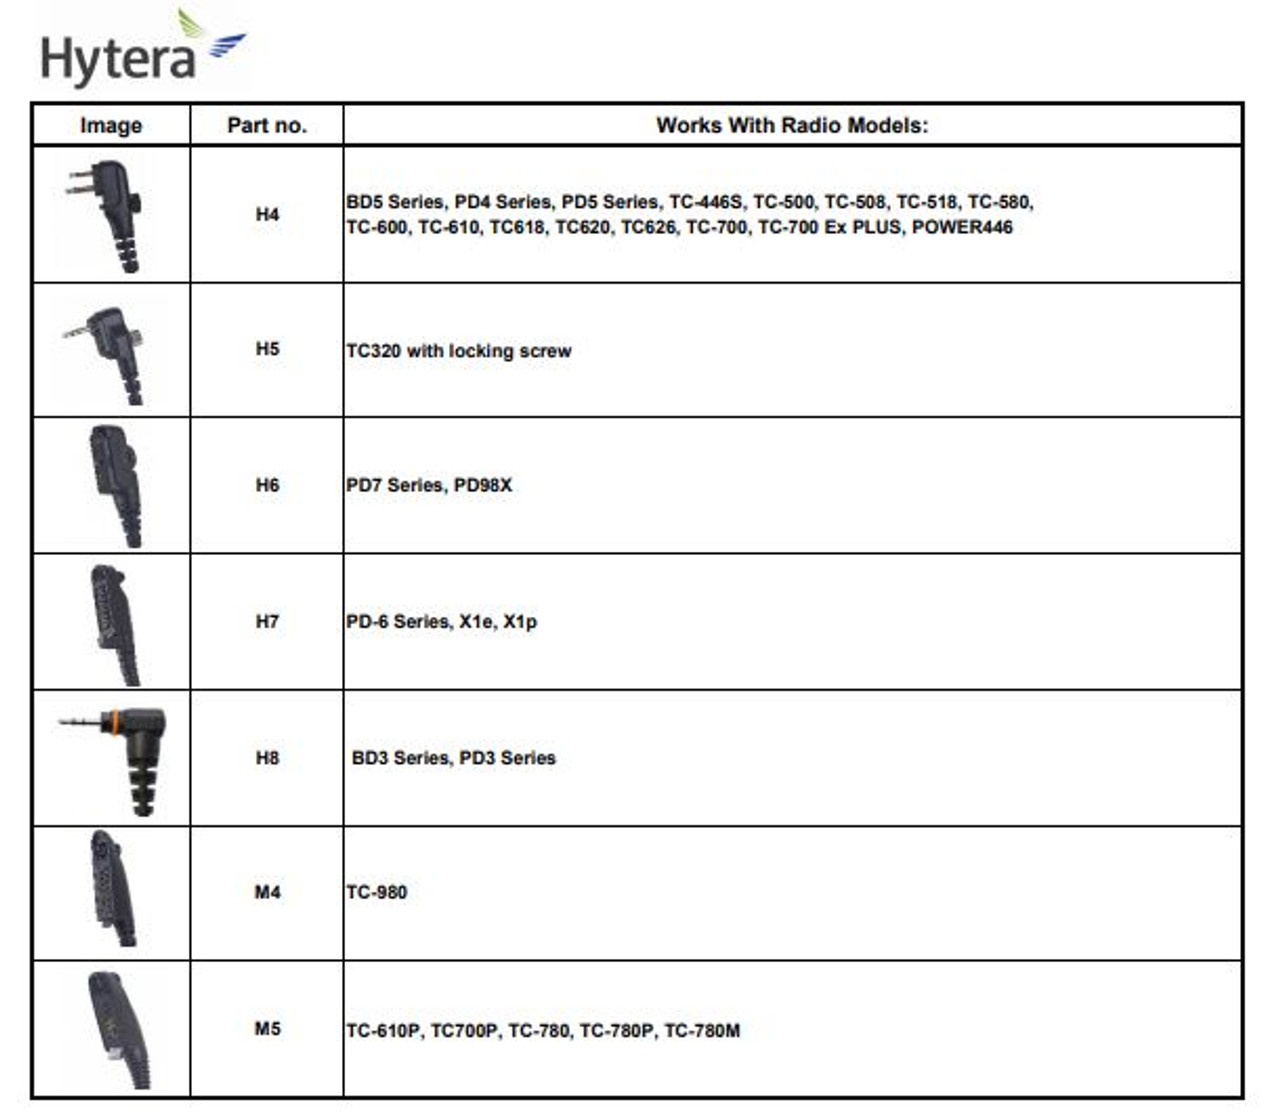 Hytera Accessory Connections